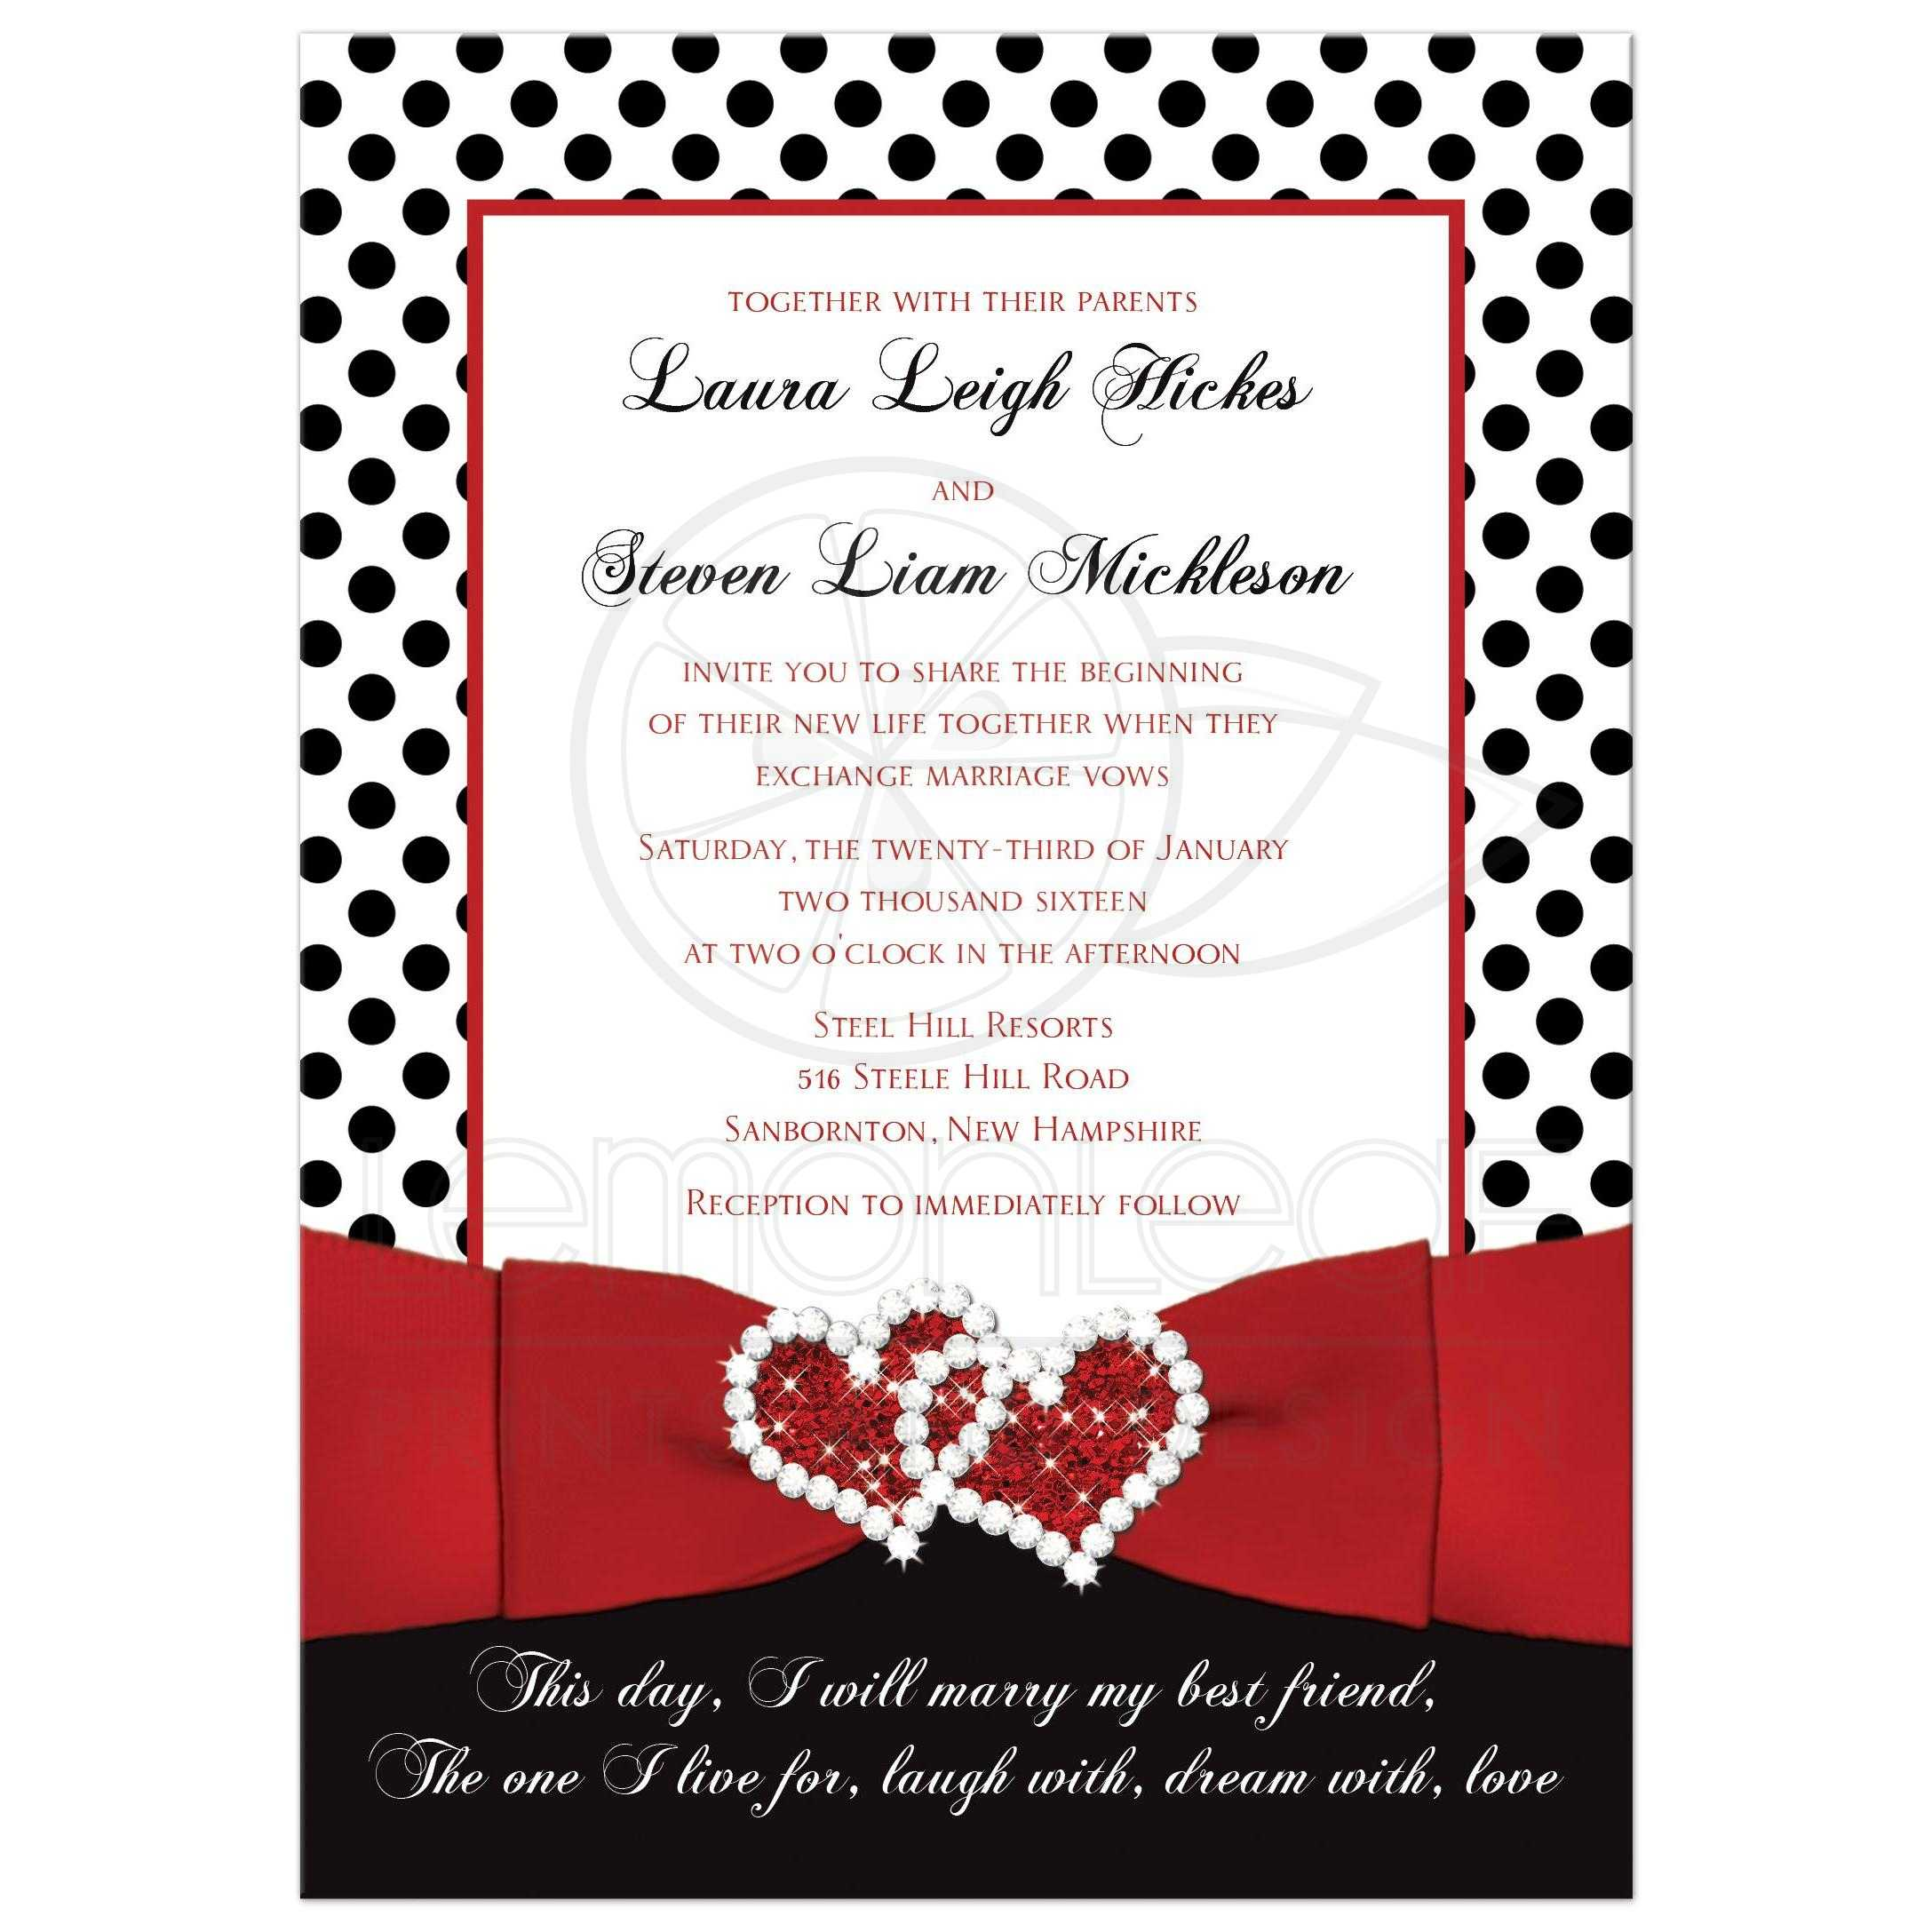 Wedding Invitation Black White Red Polka Dots Printed Ribbon